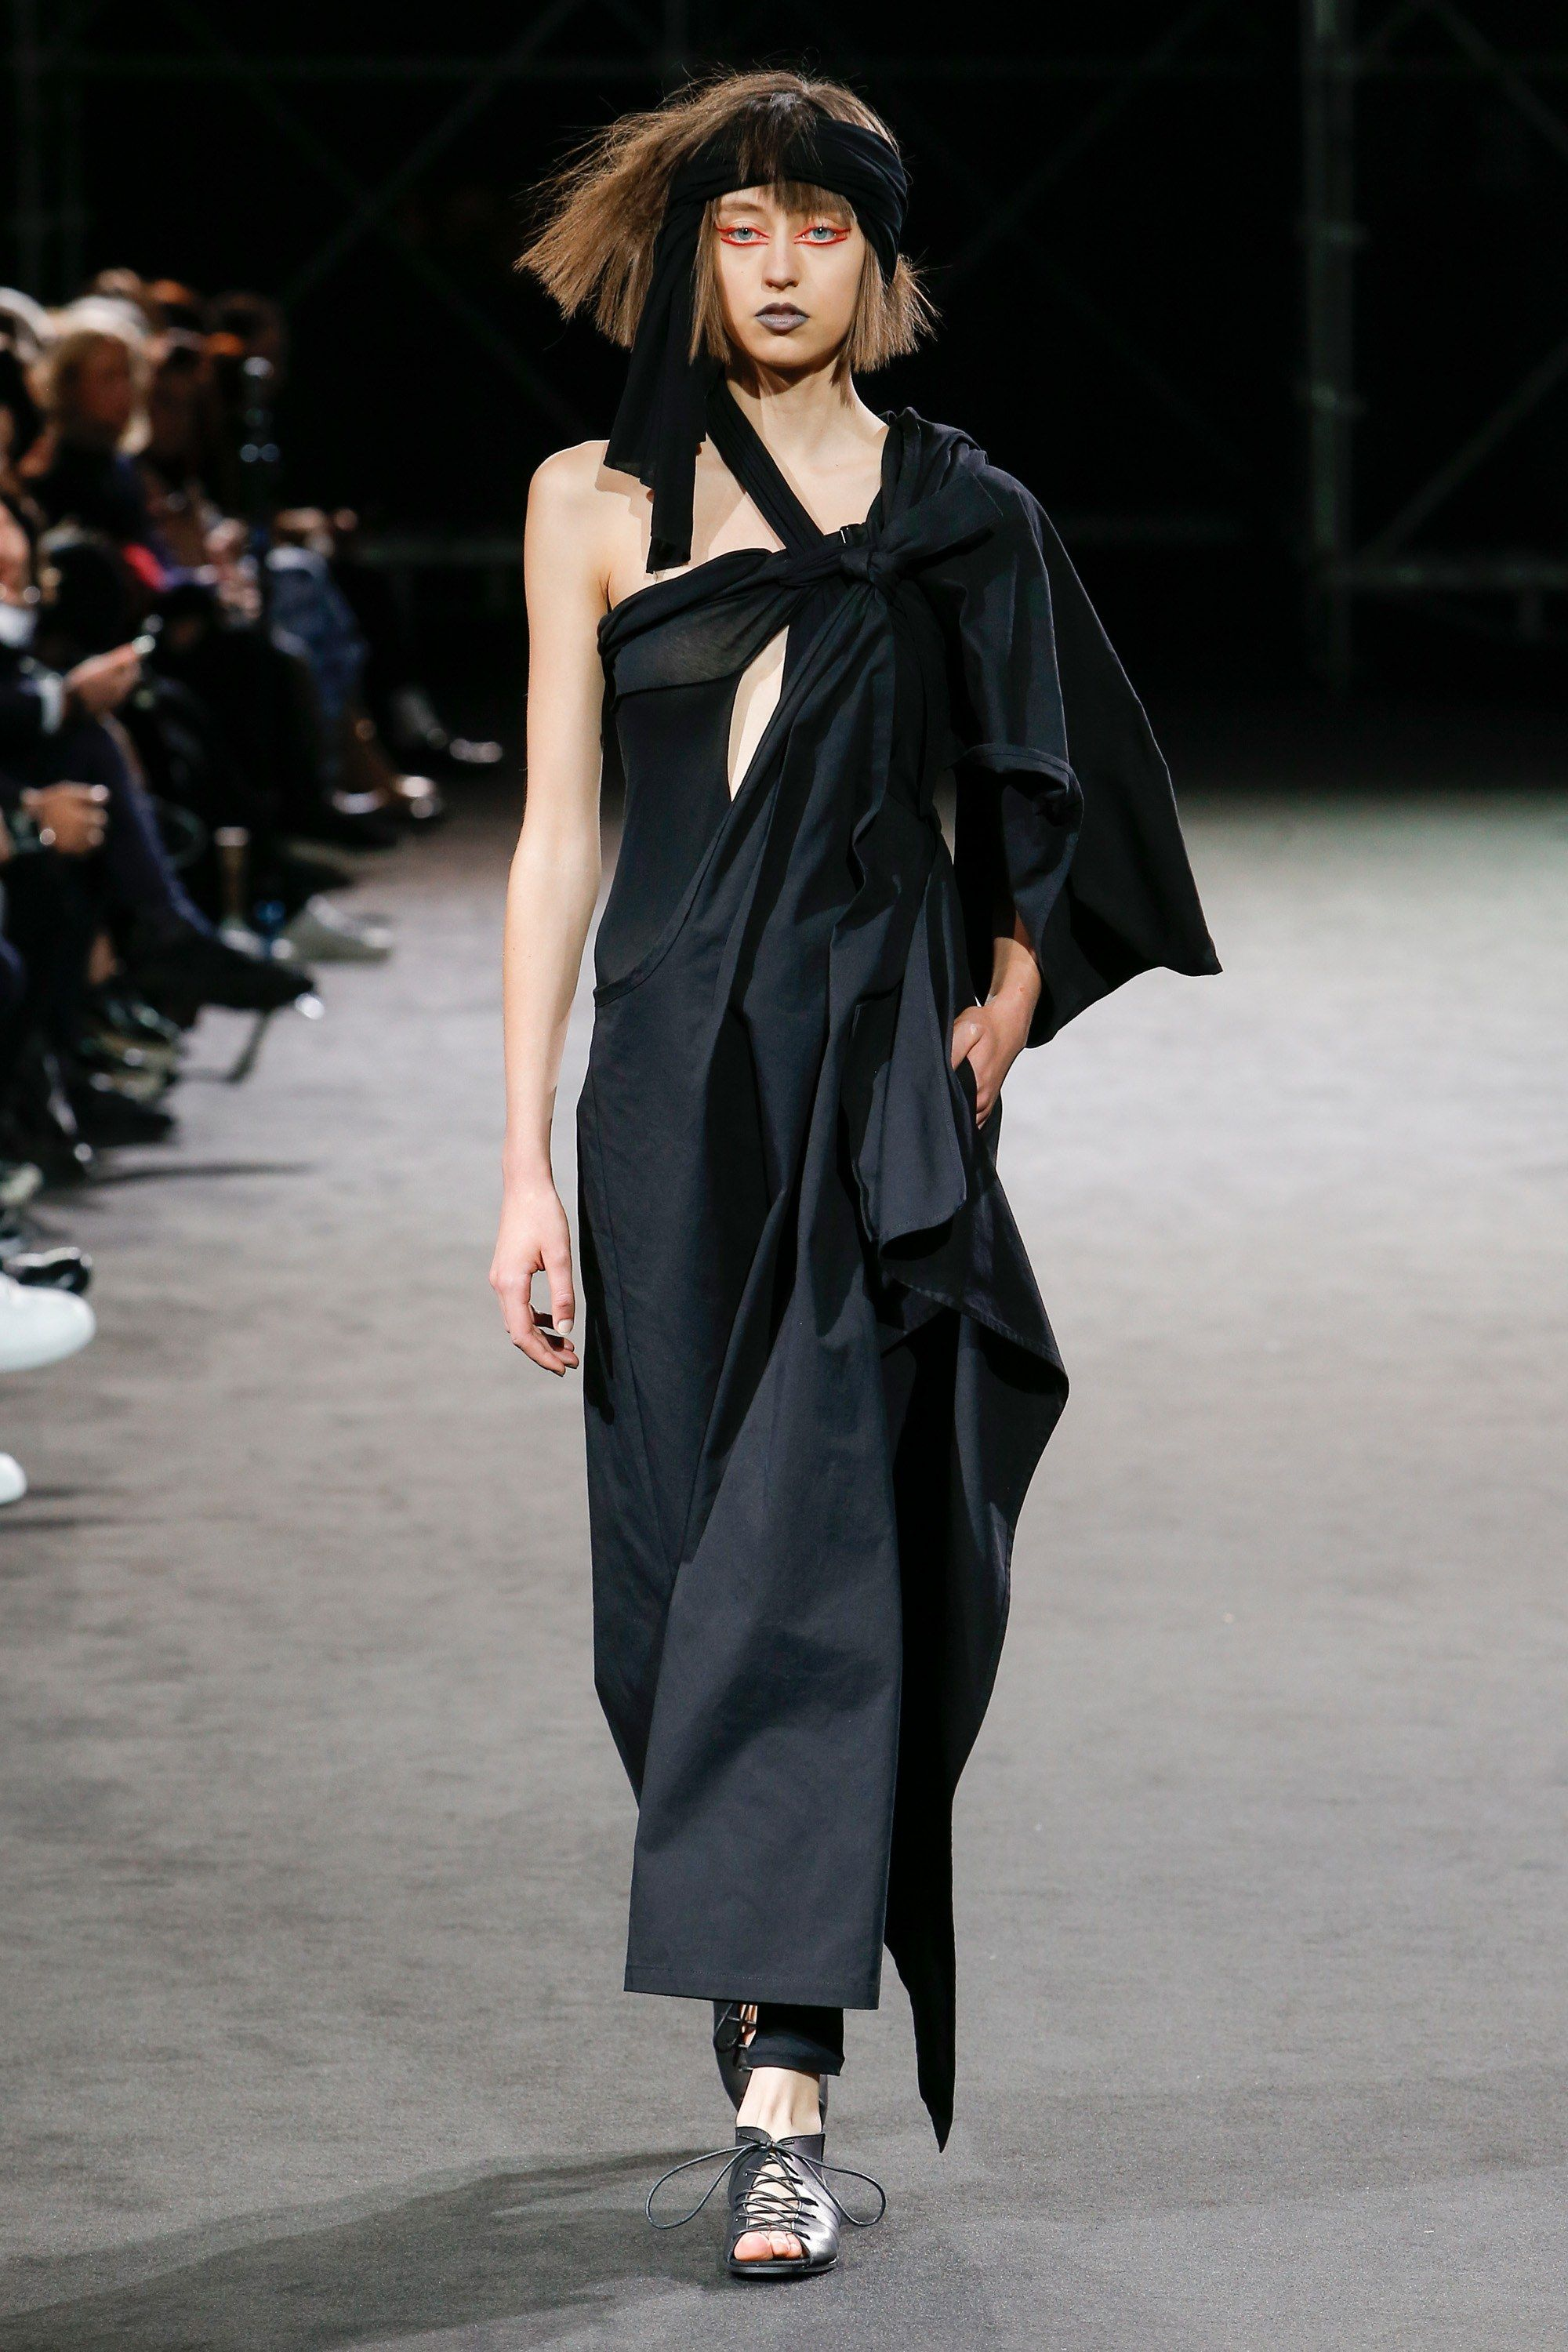 Yohji Yamamoto Spring 2019 Ready-to-Wear Collection - Vogue 35510d0f81